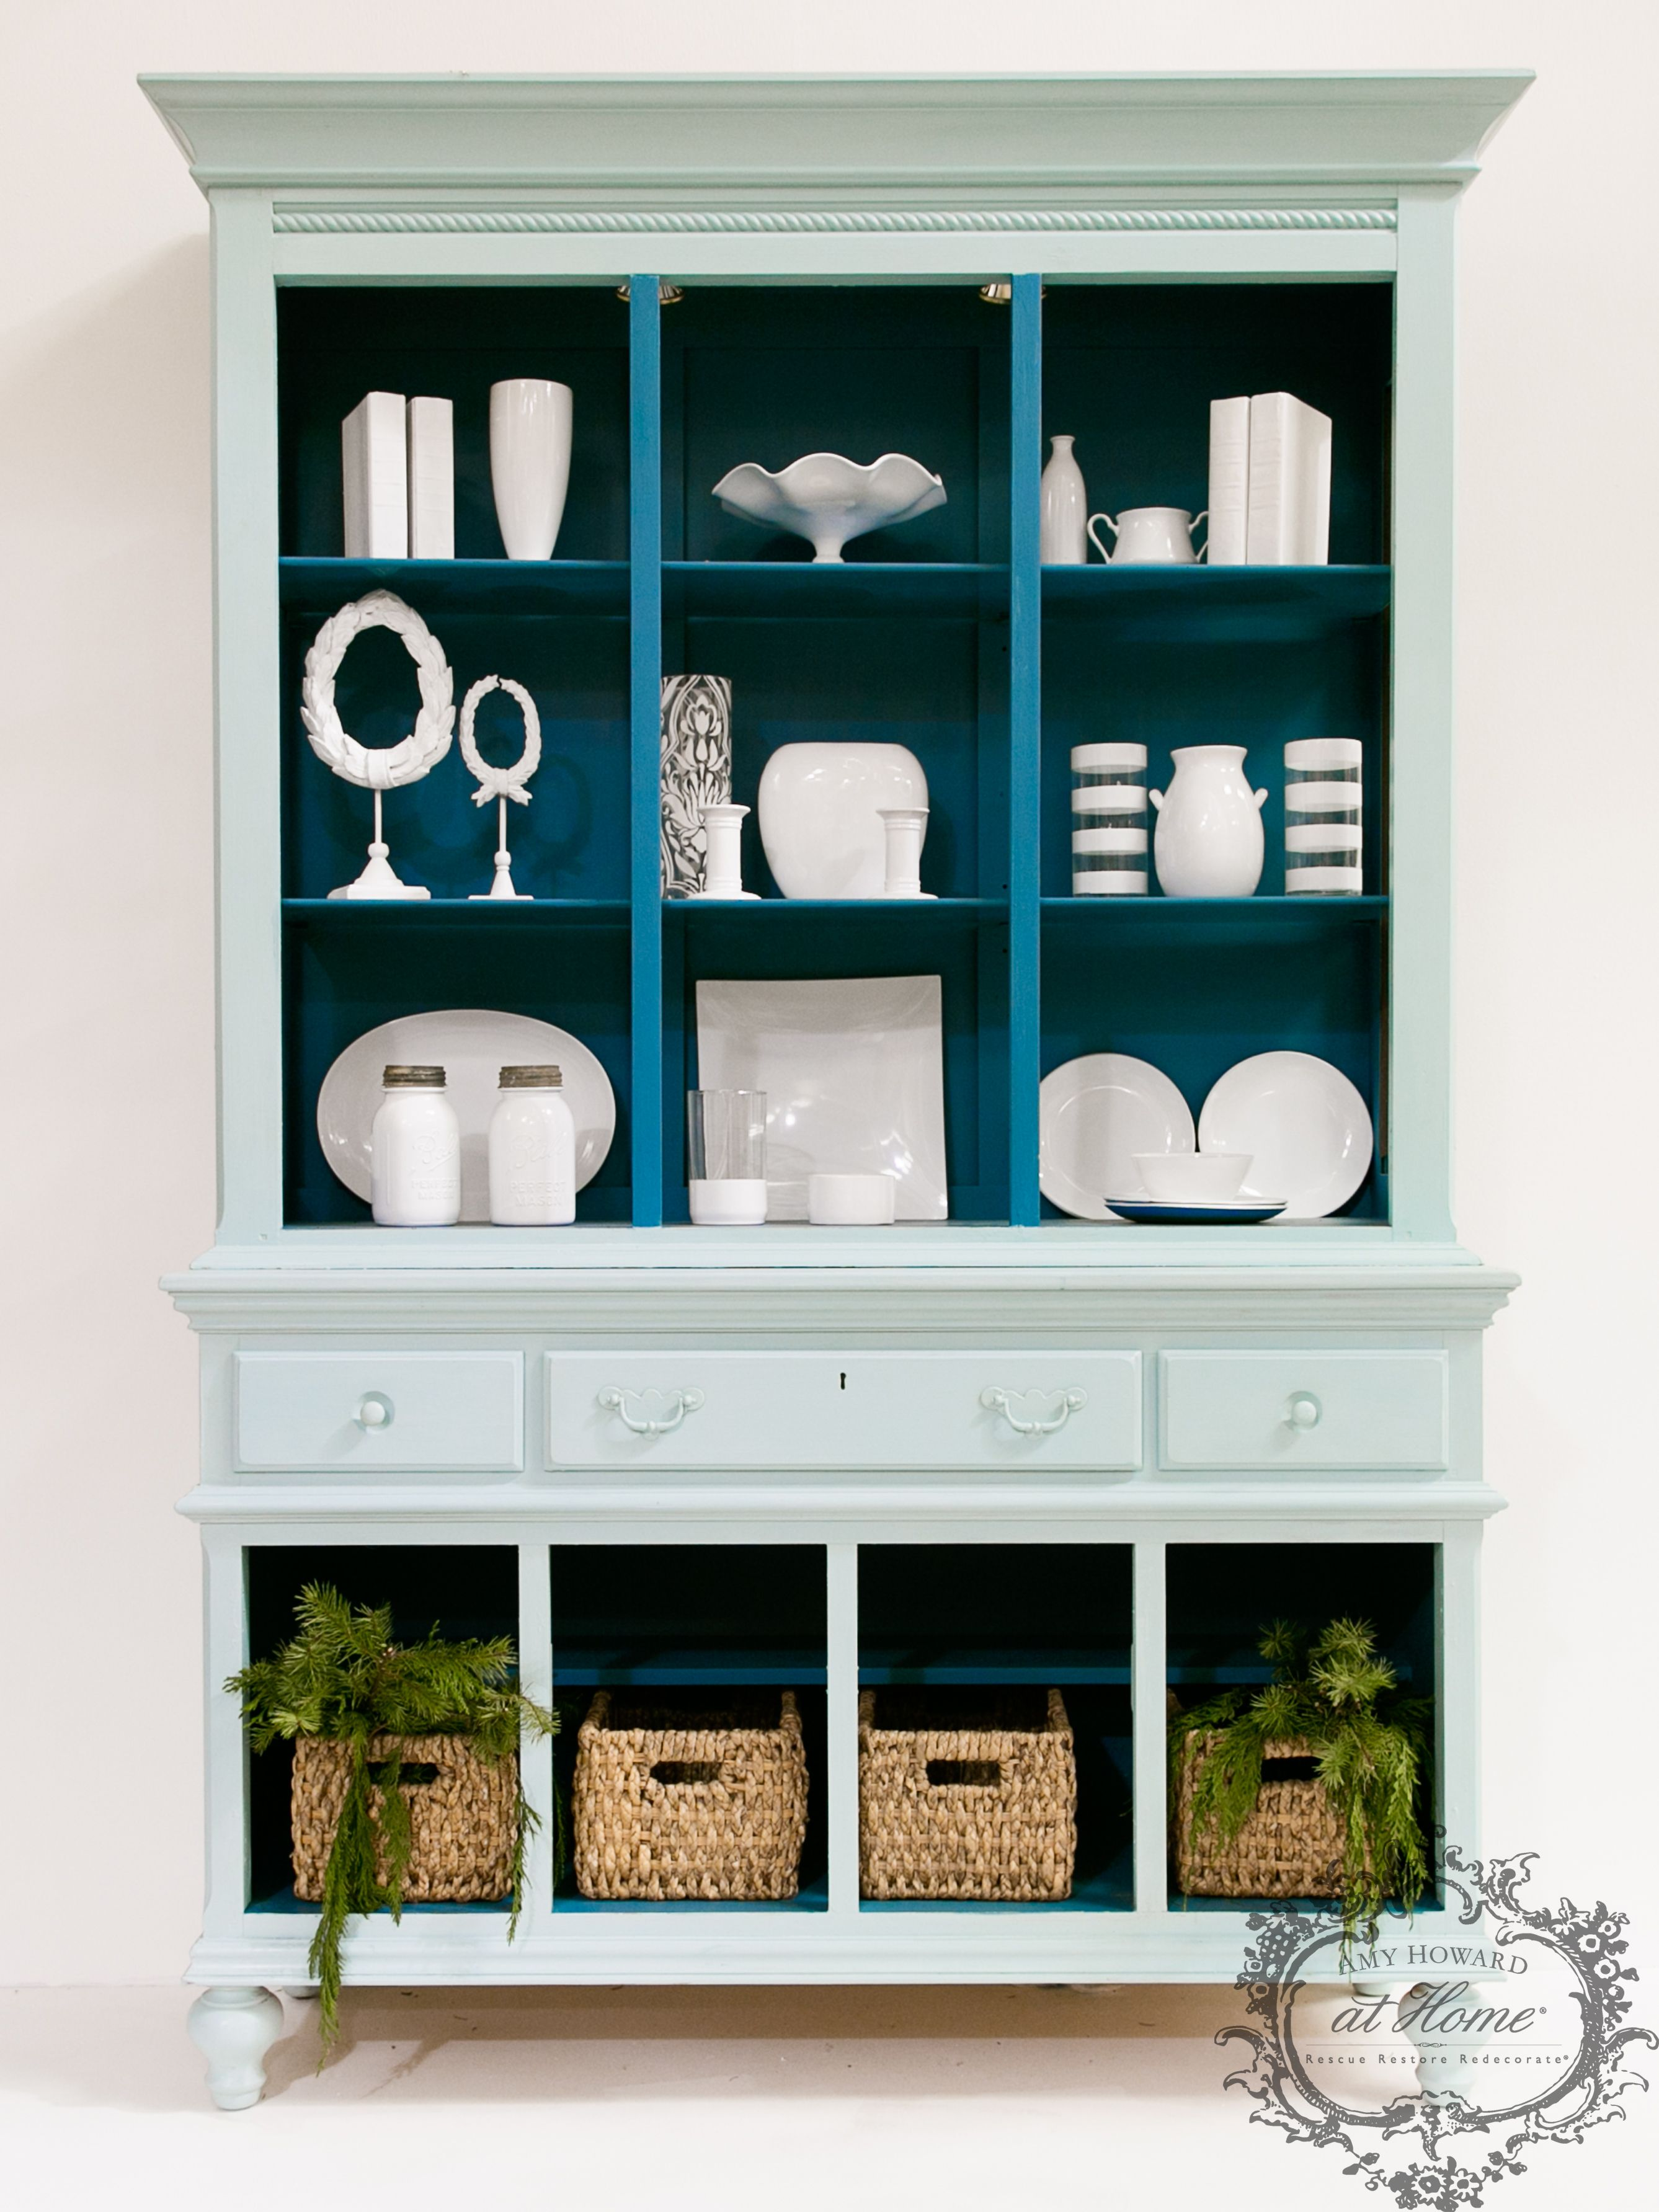 His China Cabinet Was A Craigslist Find I Took Off The Doors And Painted The Inside In Rugo One S Furniture Finishes Diy Furniture Hacks Refurbished Furniture